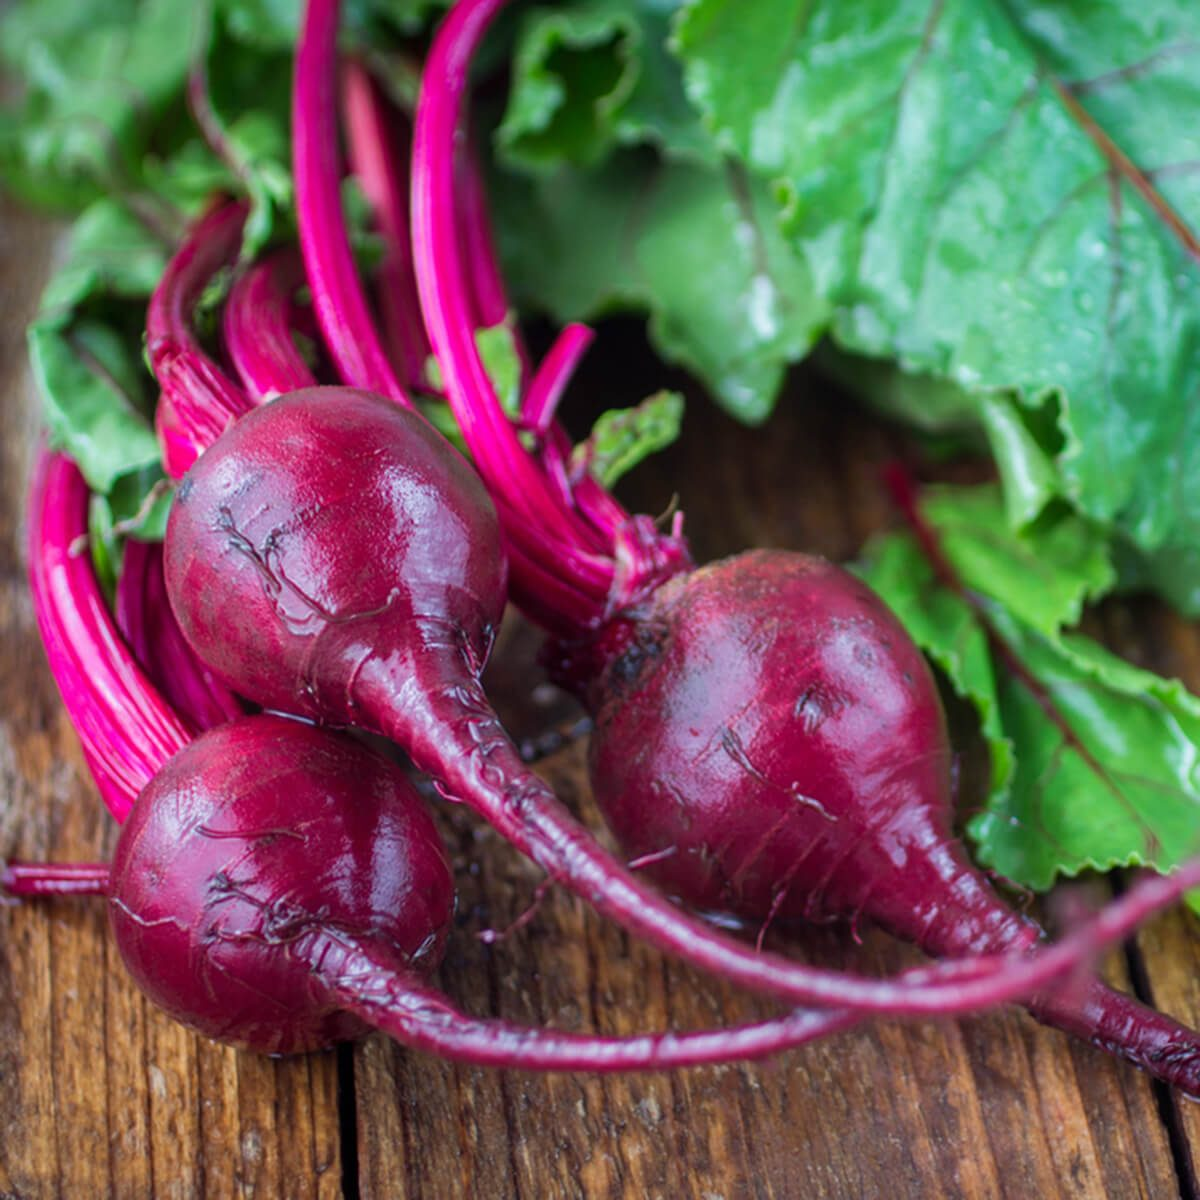 Organic red beets with green leaves on an old wooden table. Rustic style